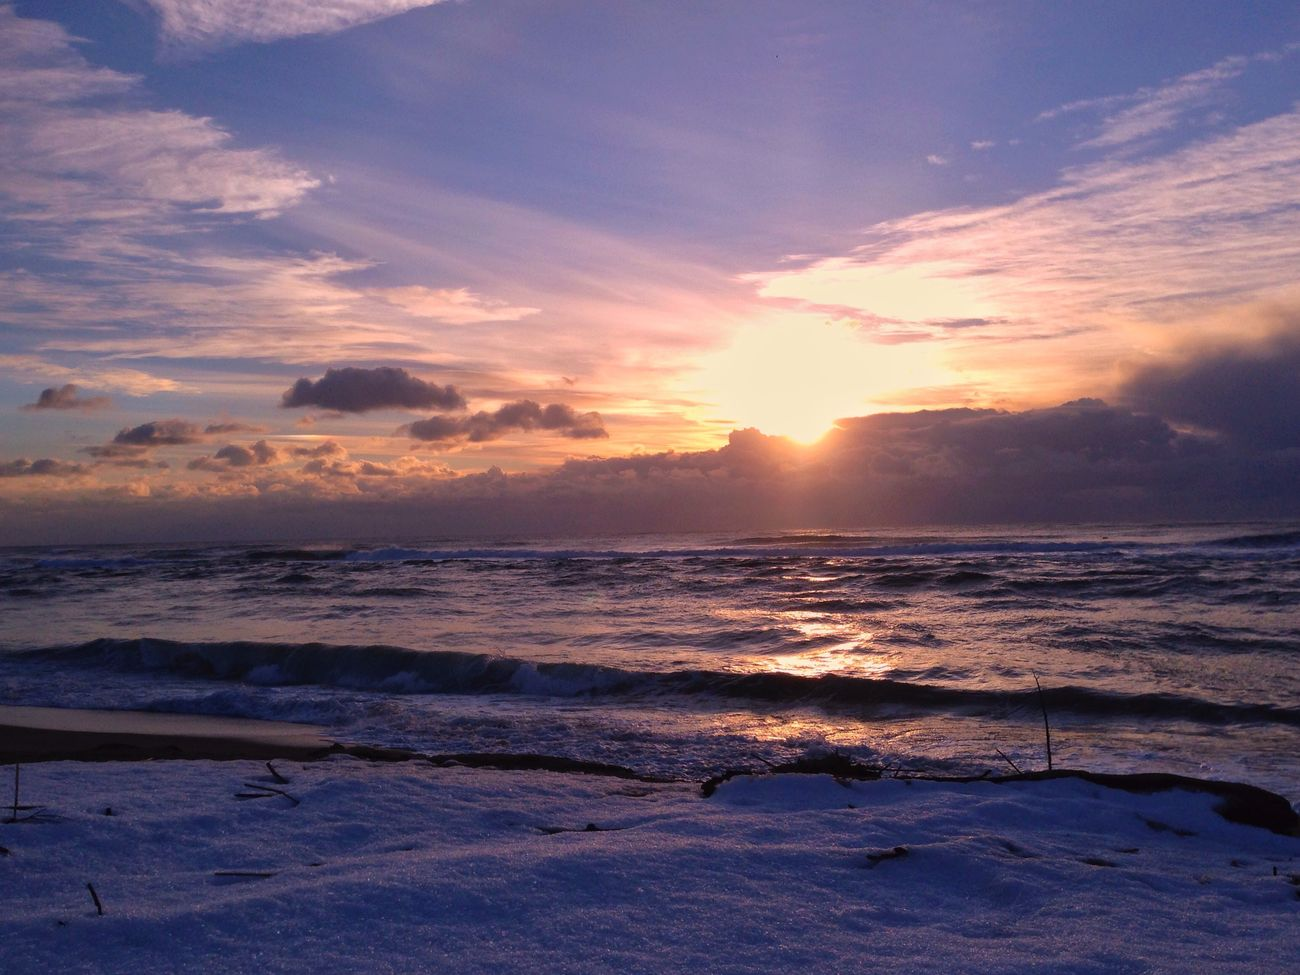 IPhone IPhoneography Mobilephotography Beach Sunset Snow ❄ Surf Photography Beauty In Nature Sea Wave EvningGlow Evning Sky